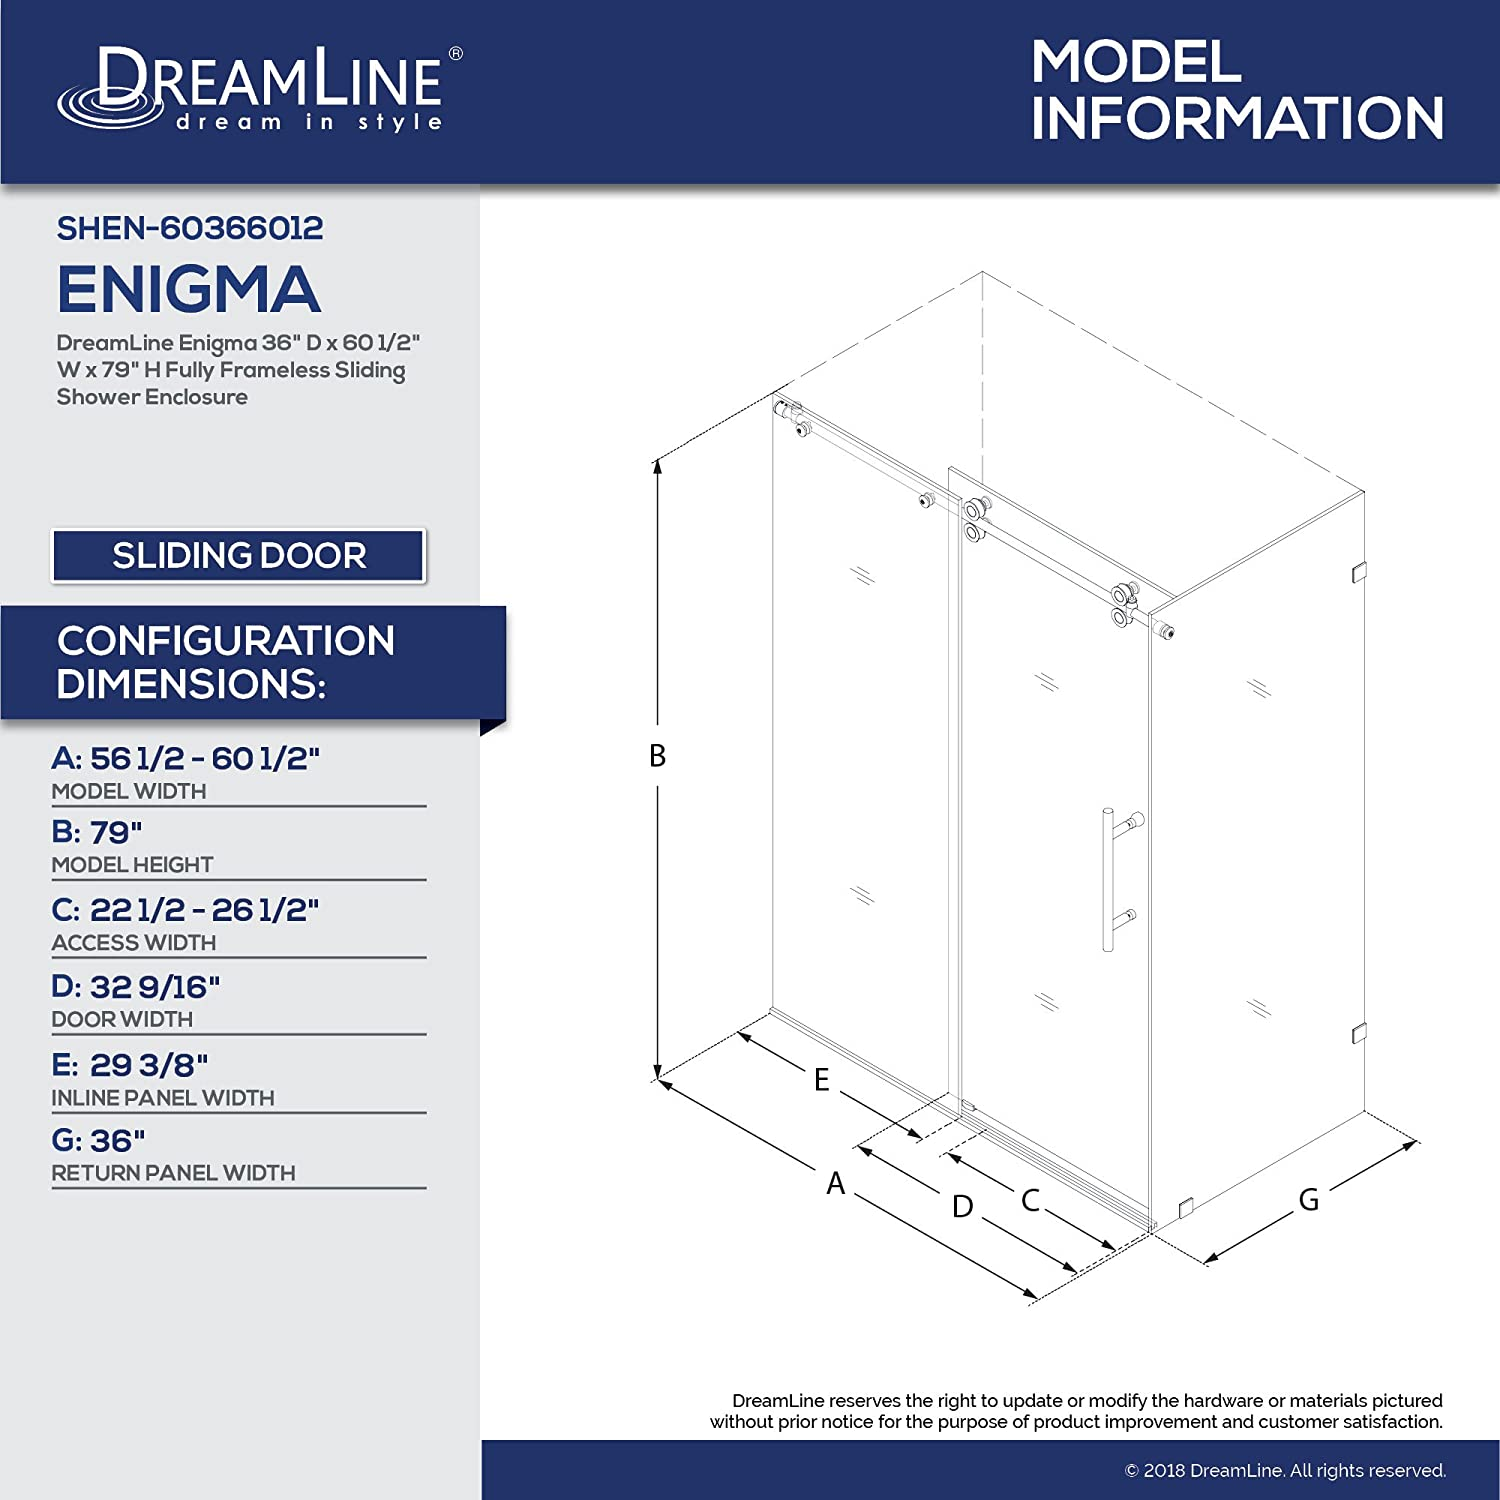 DreamLine Enigma 36 in. D x 60 1 2 in. W x 79 in. H Frameless Sliding Shower Enclosure in Brushed Stainless Steel, 1 2 in. Glass, SHEN-60366012-07